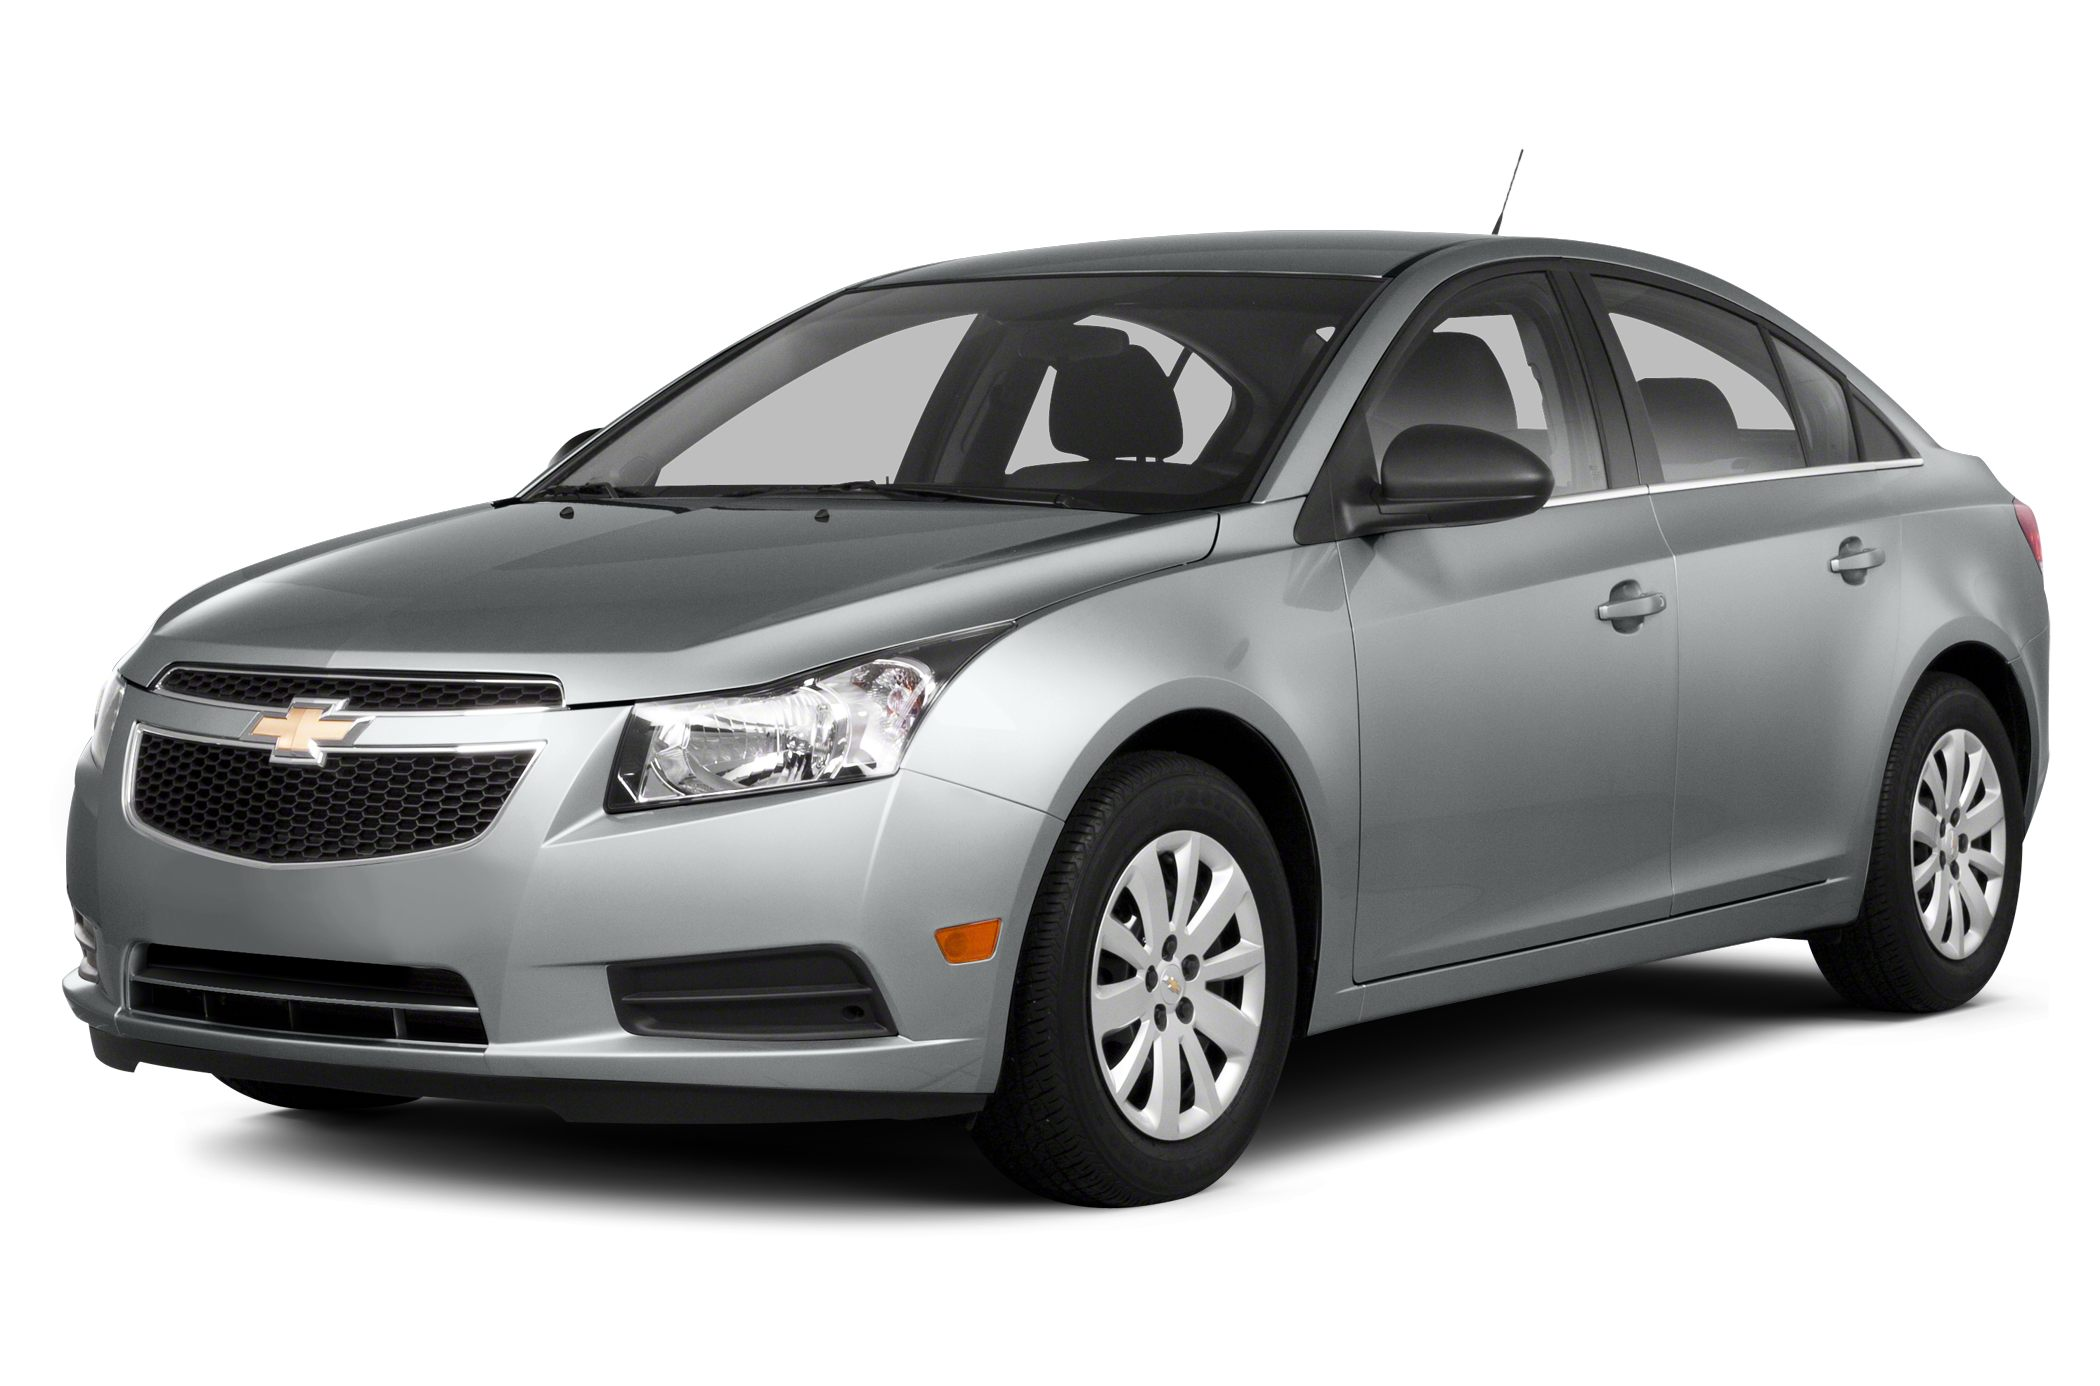 2013 Chevrolet Cruze 1LT Sedan for sale in Clintonville for $13,980 with 21,270 miles.